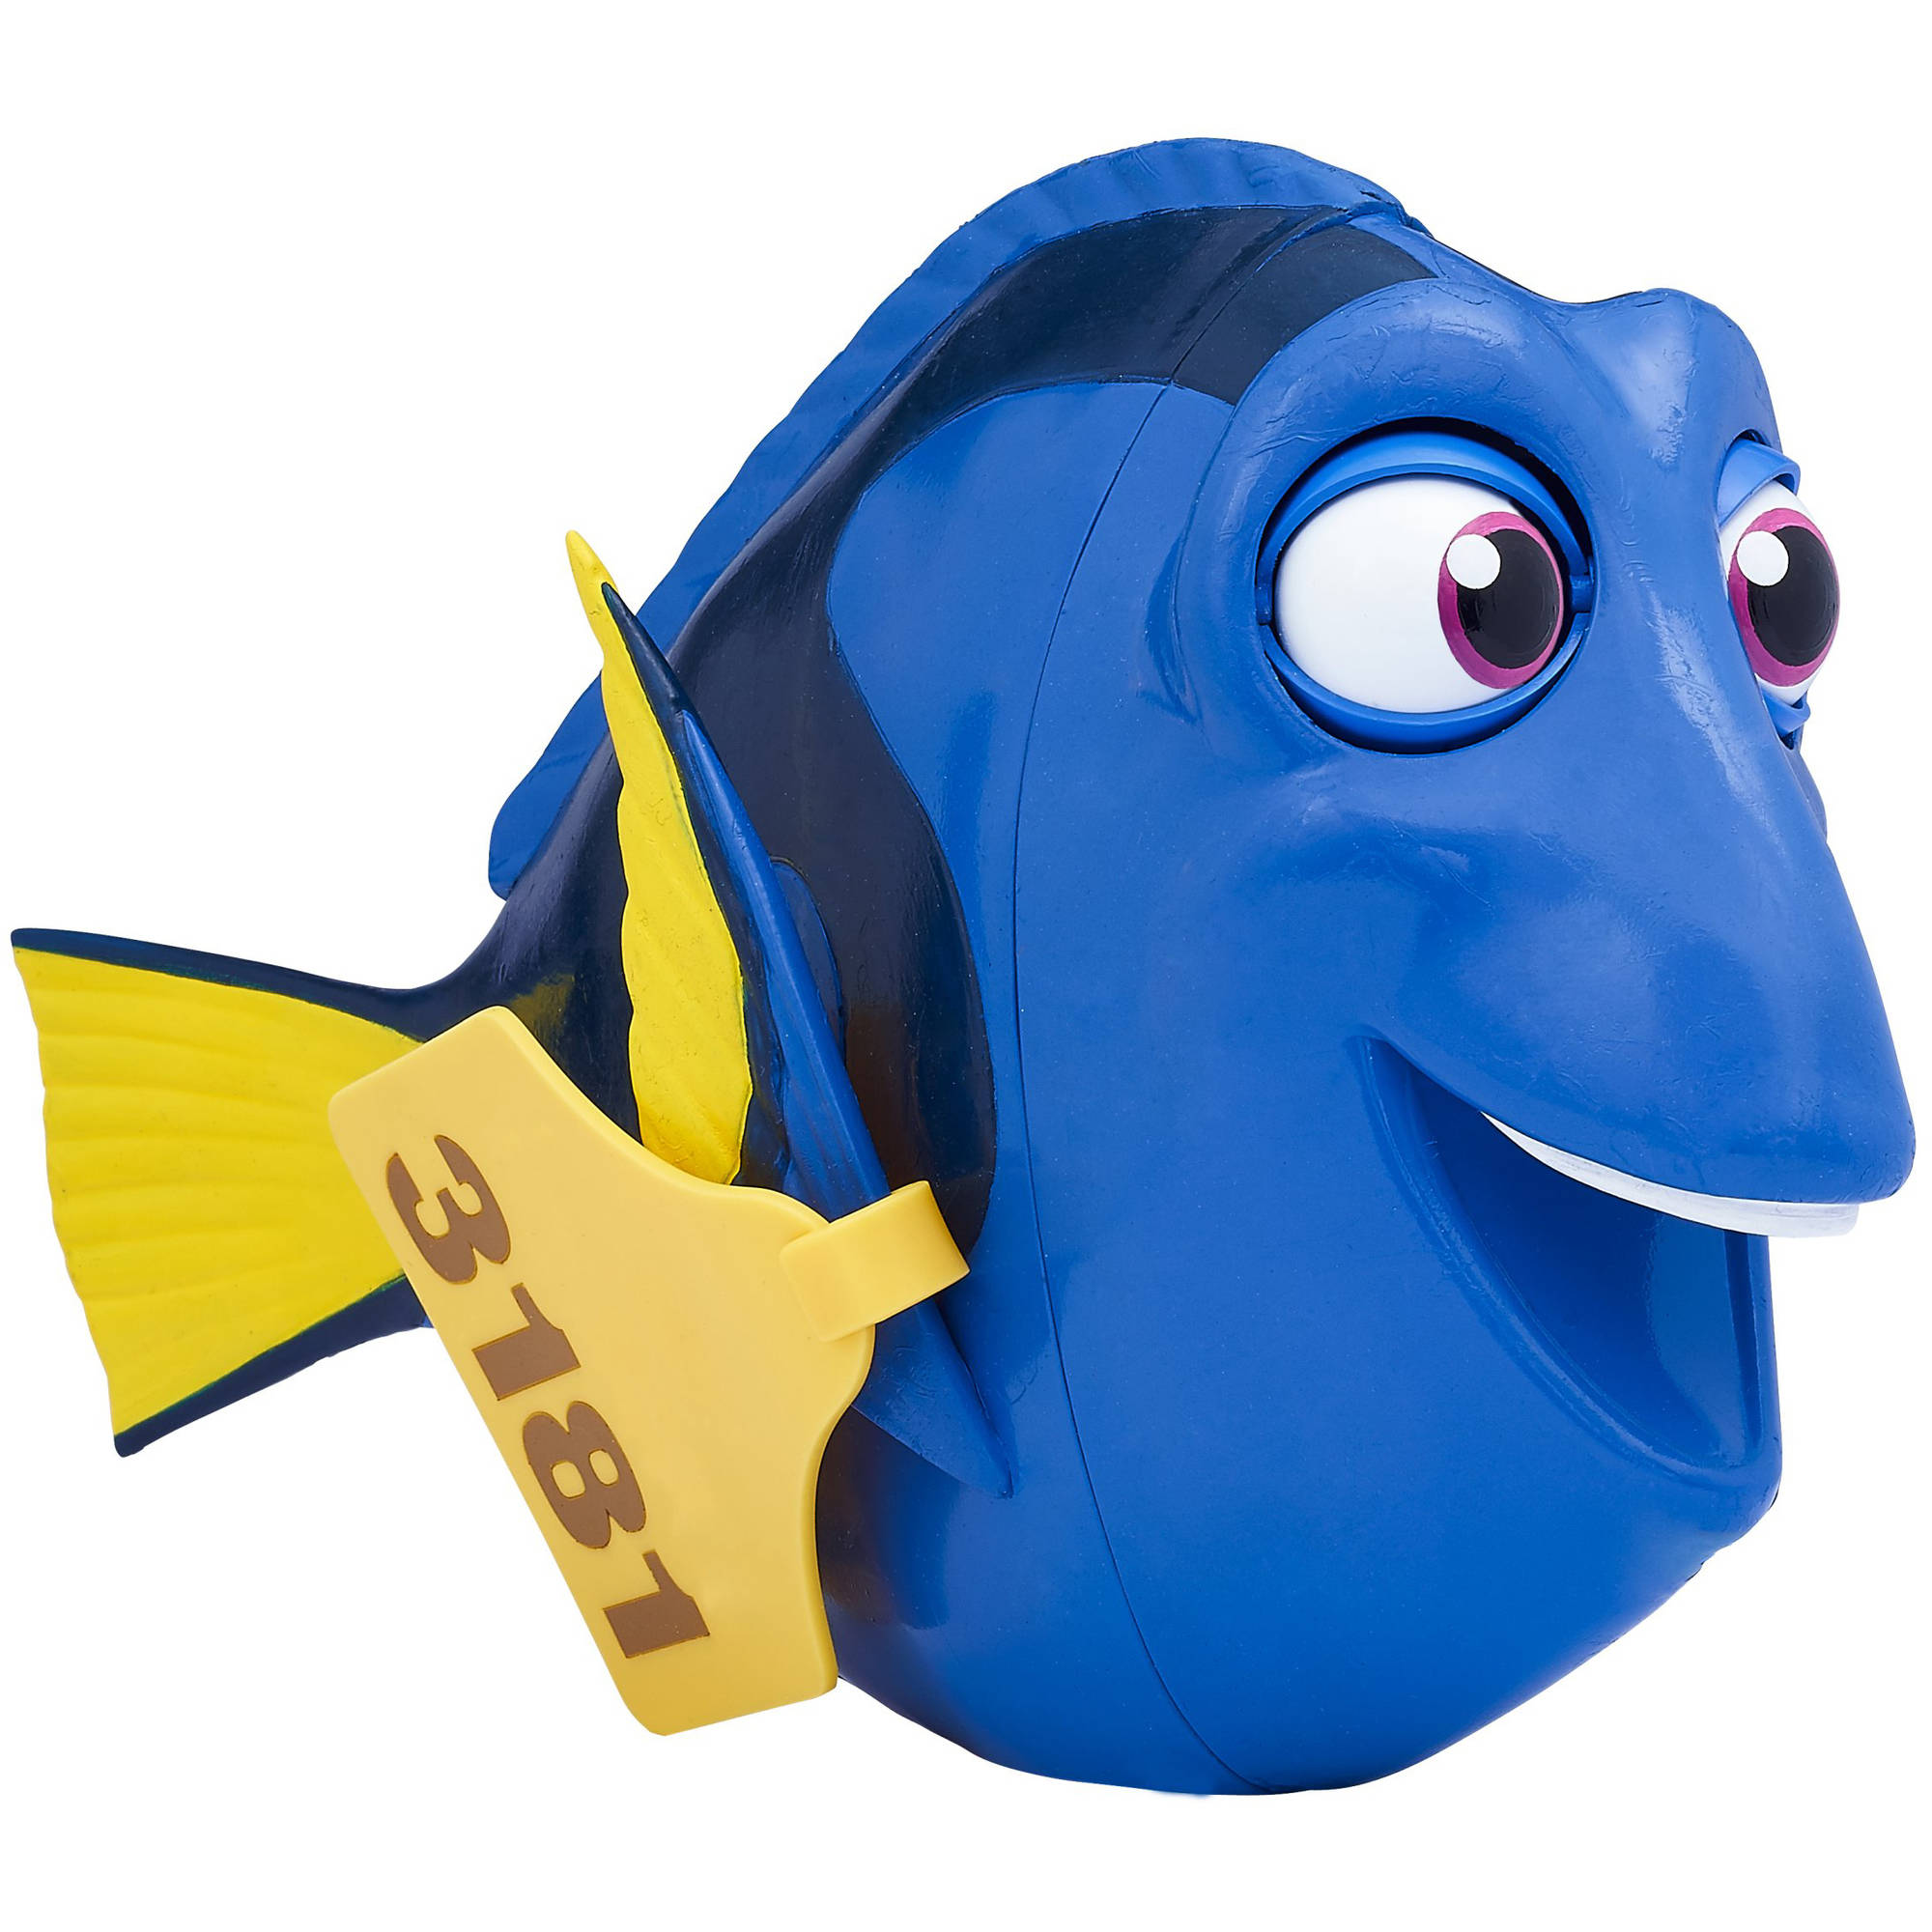 Disney Finding Dory My Friend Dory - Walmart.com